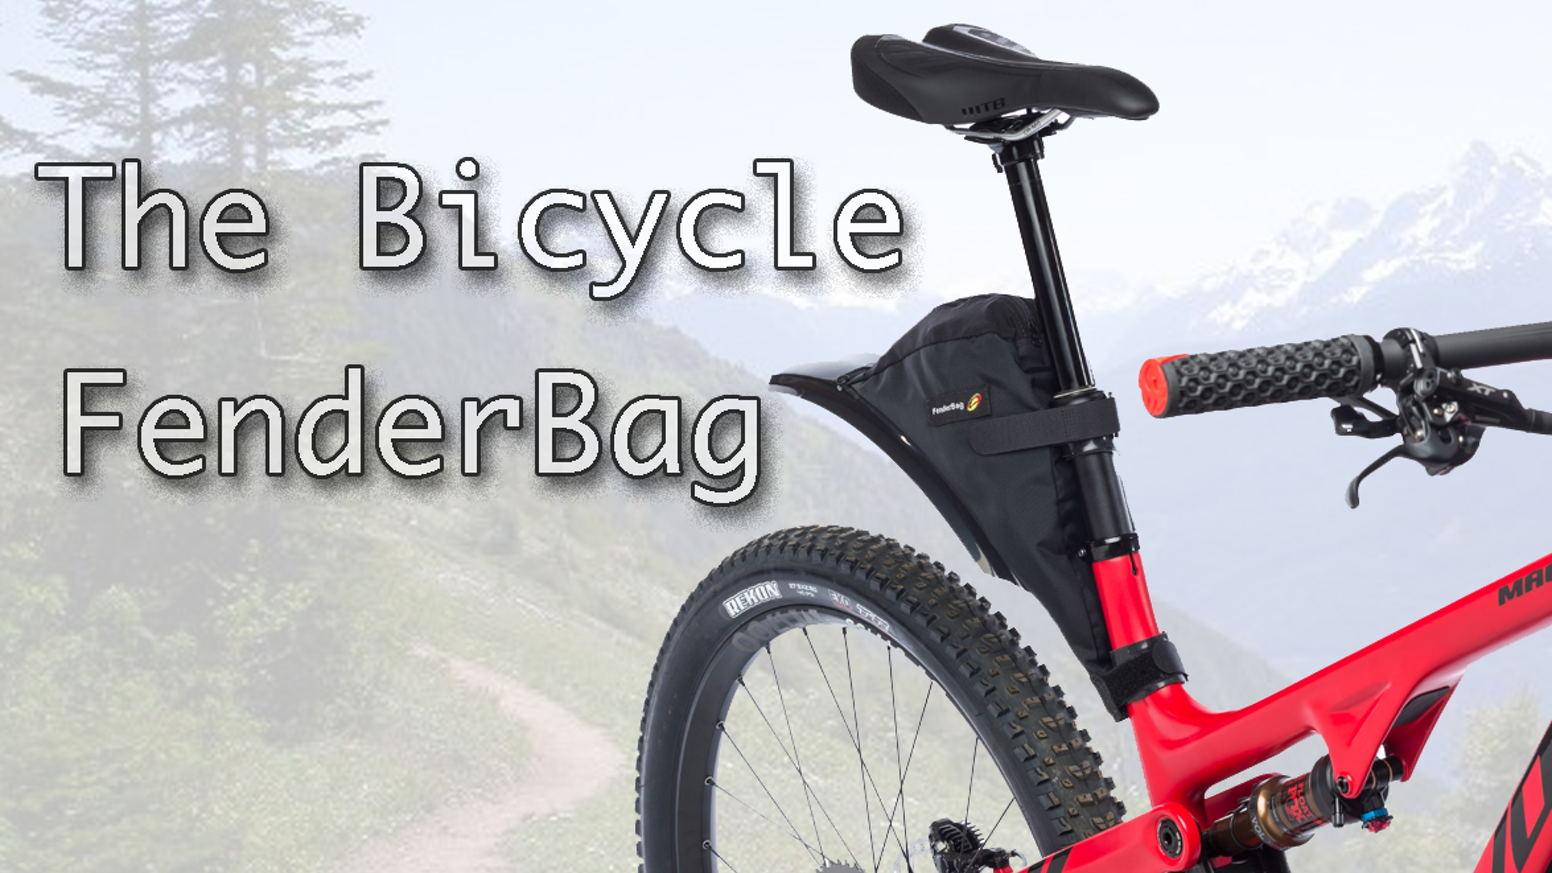 The Bicycle FenderBag